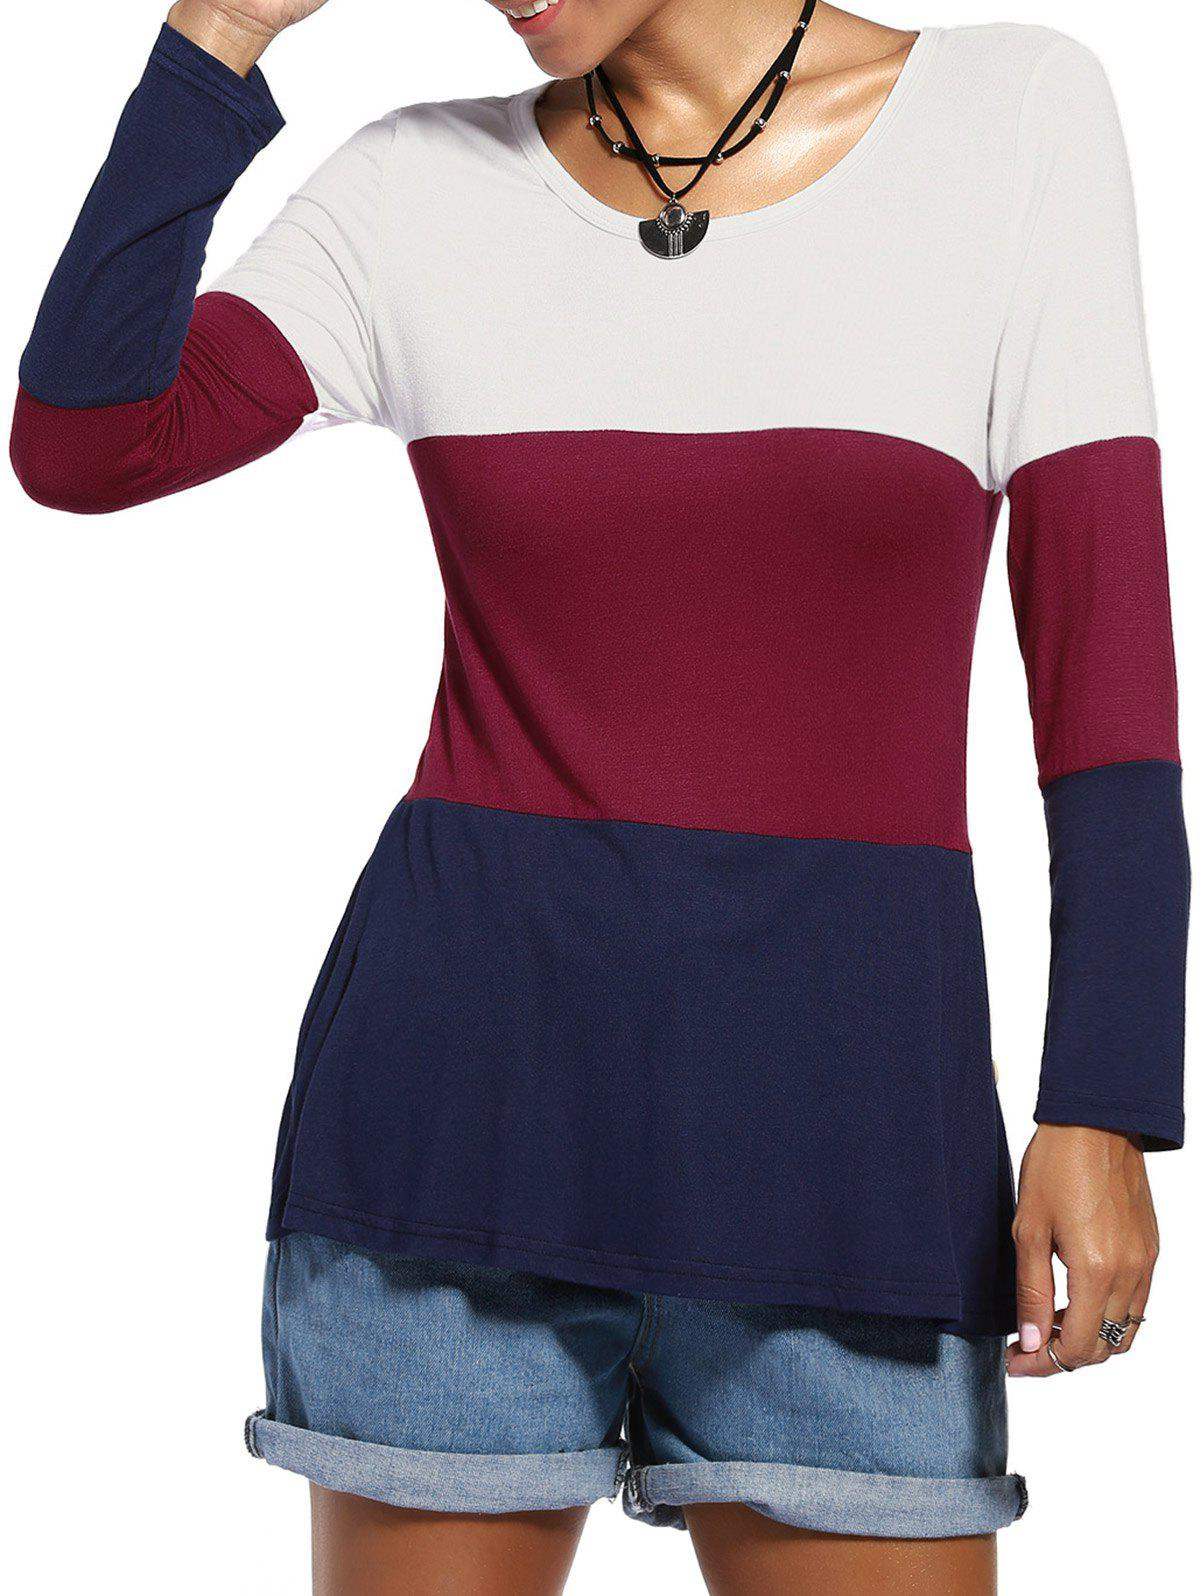 Jewel Neck Color Blocks Buttons Decorated Long Sleeve Casual Tee For Women - COLORMIX L